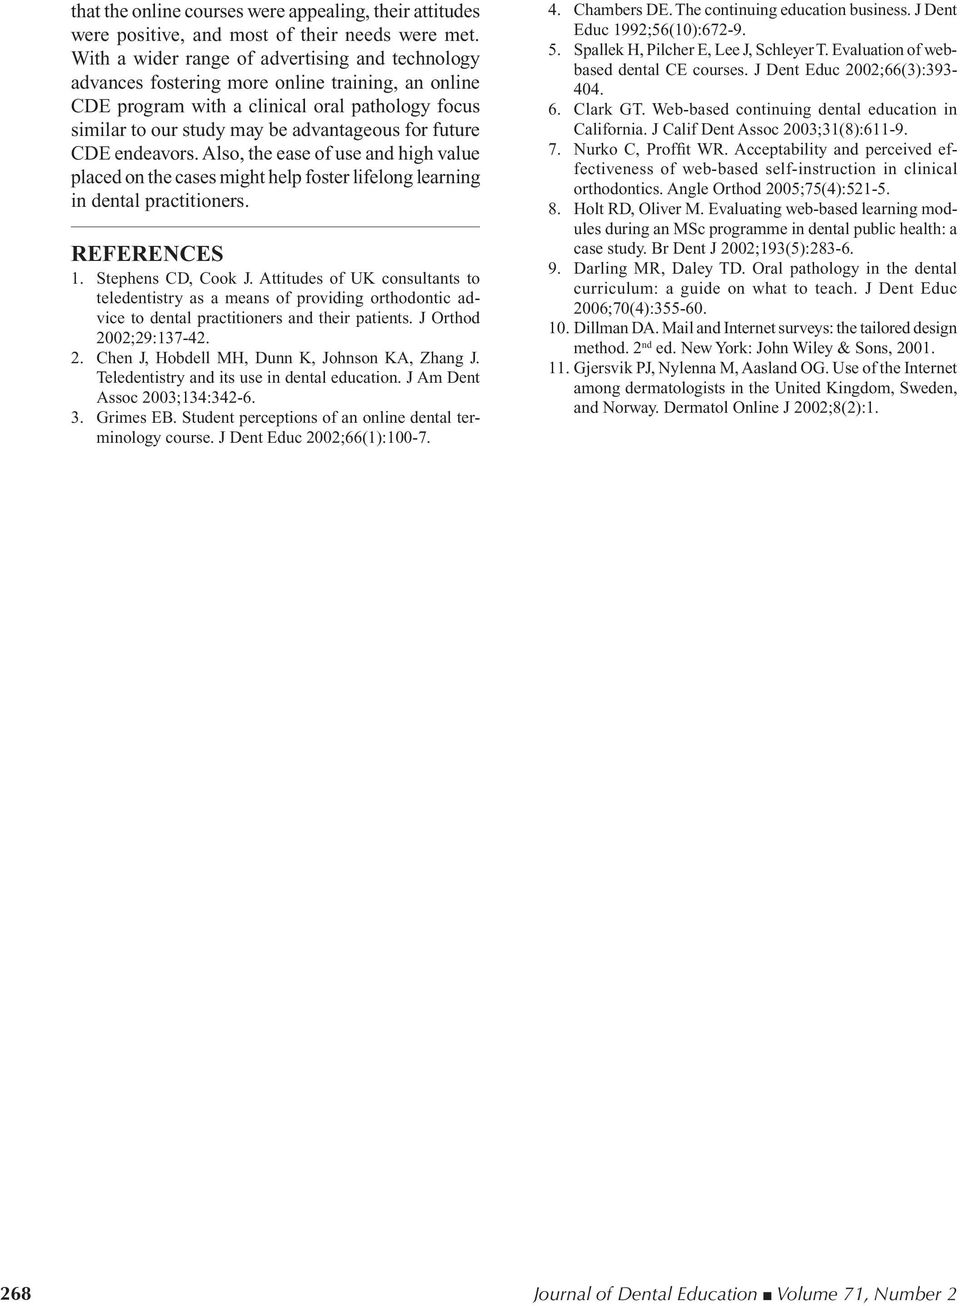 future CDE endeavors. Also, the ease of use and high value placed on the cases might help foster lifelong learning in dental practitioners. REFERENCES 1. Stephens CD, Cook J.